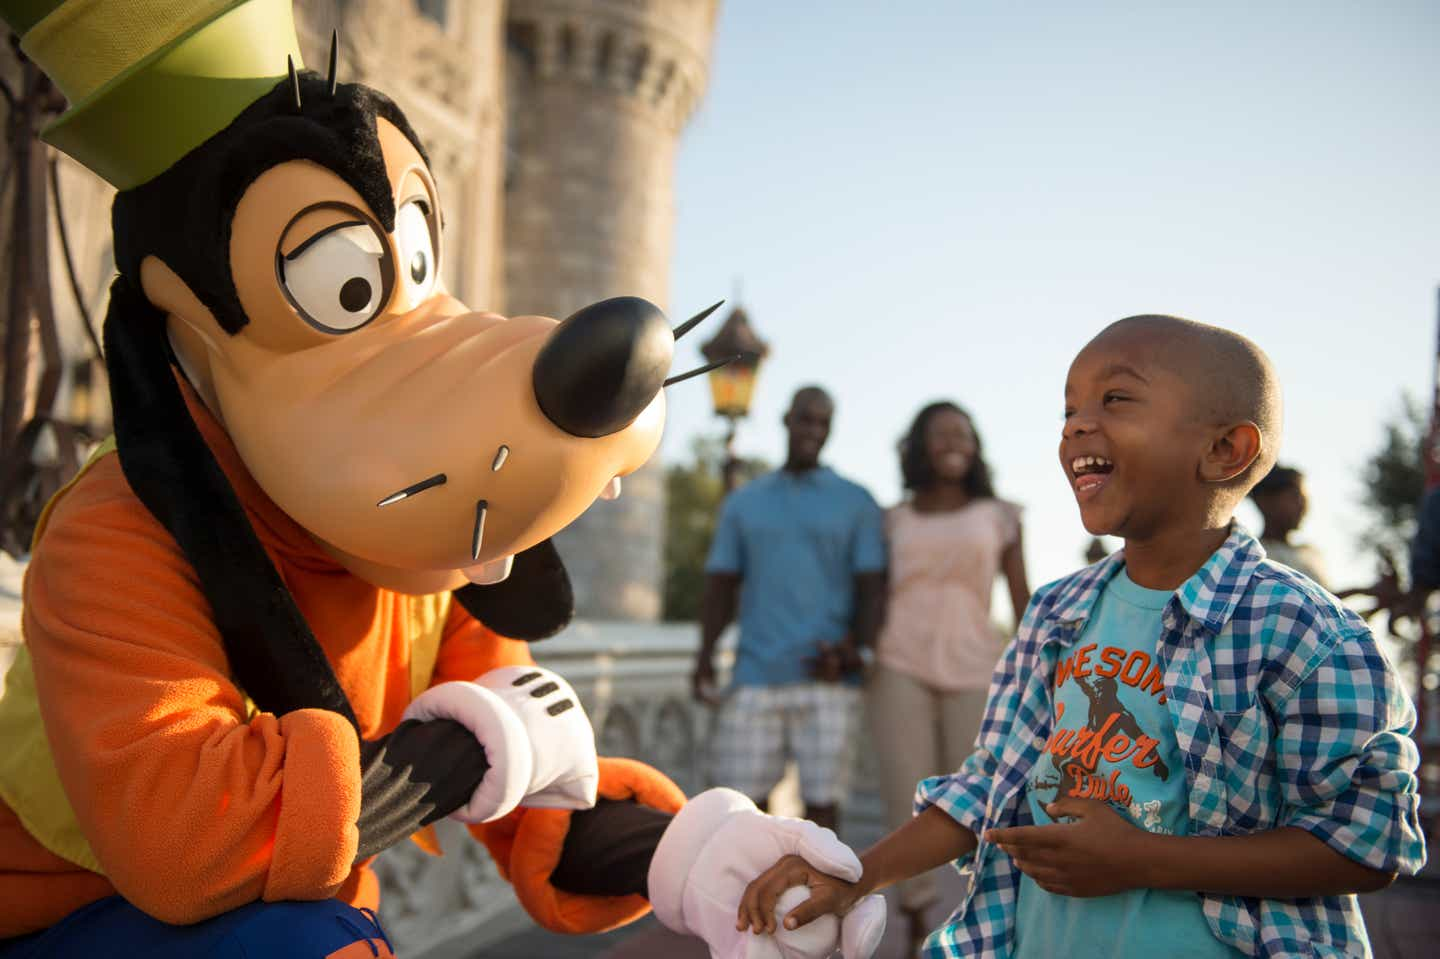 Child meeting Goofy at Walt Disney World